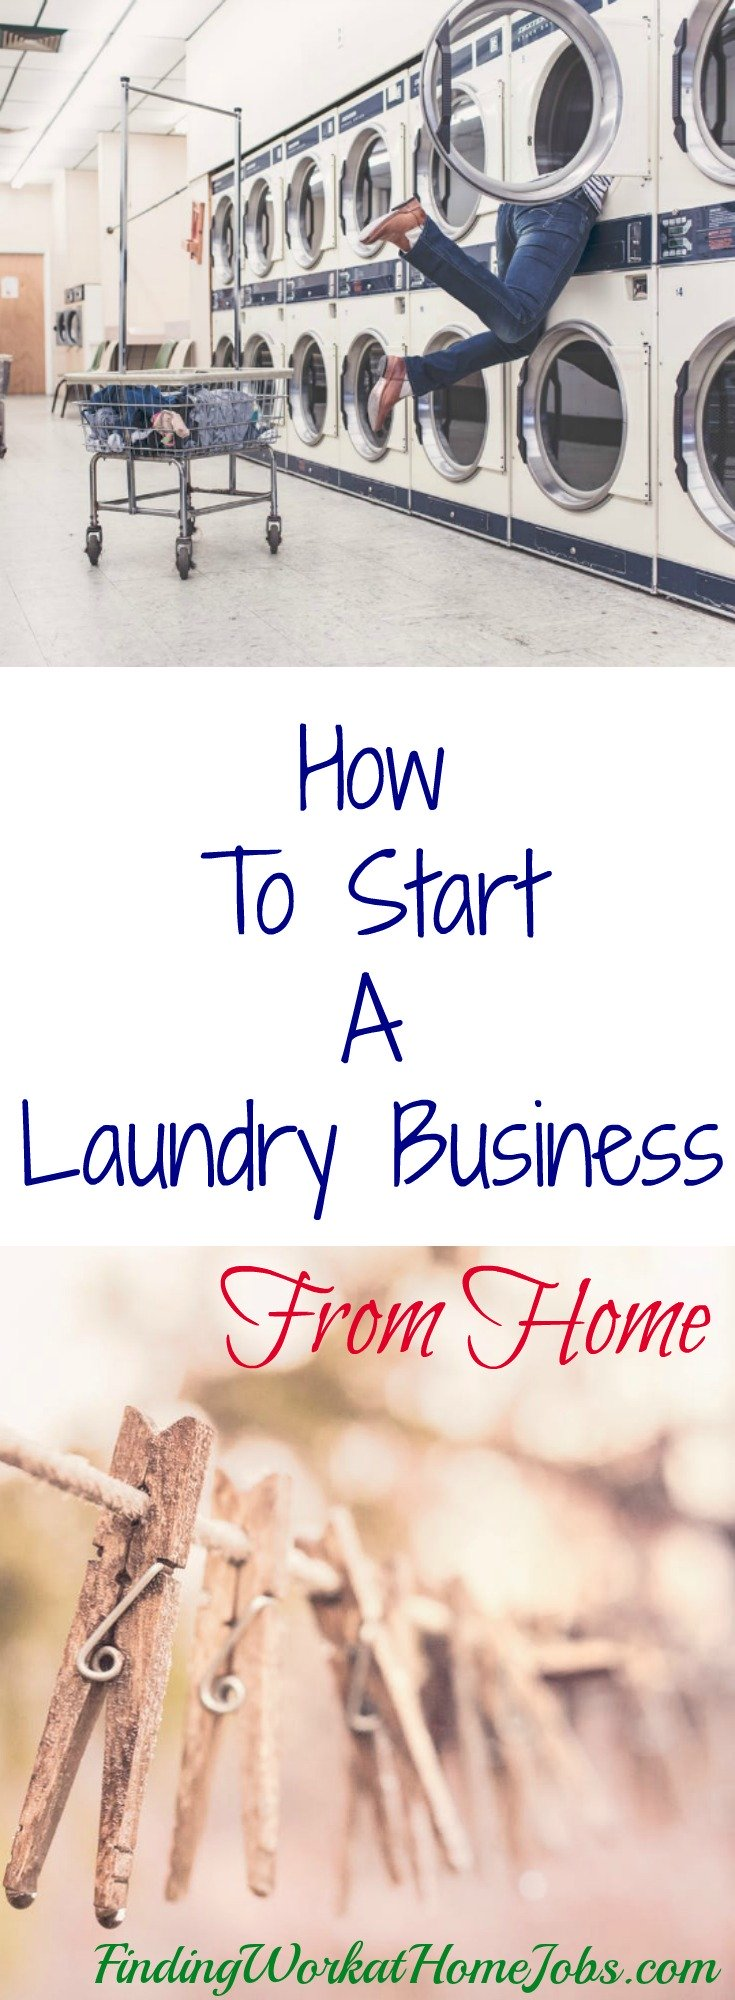 Start a Laundry Business